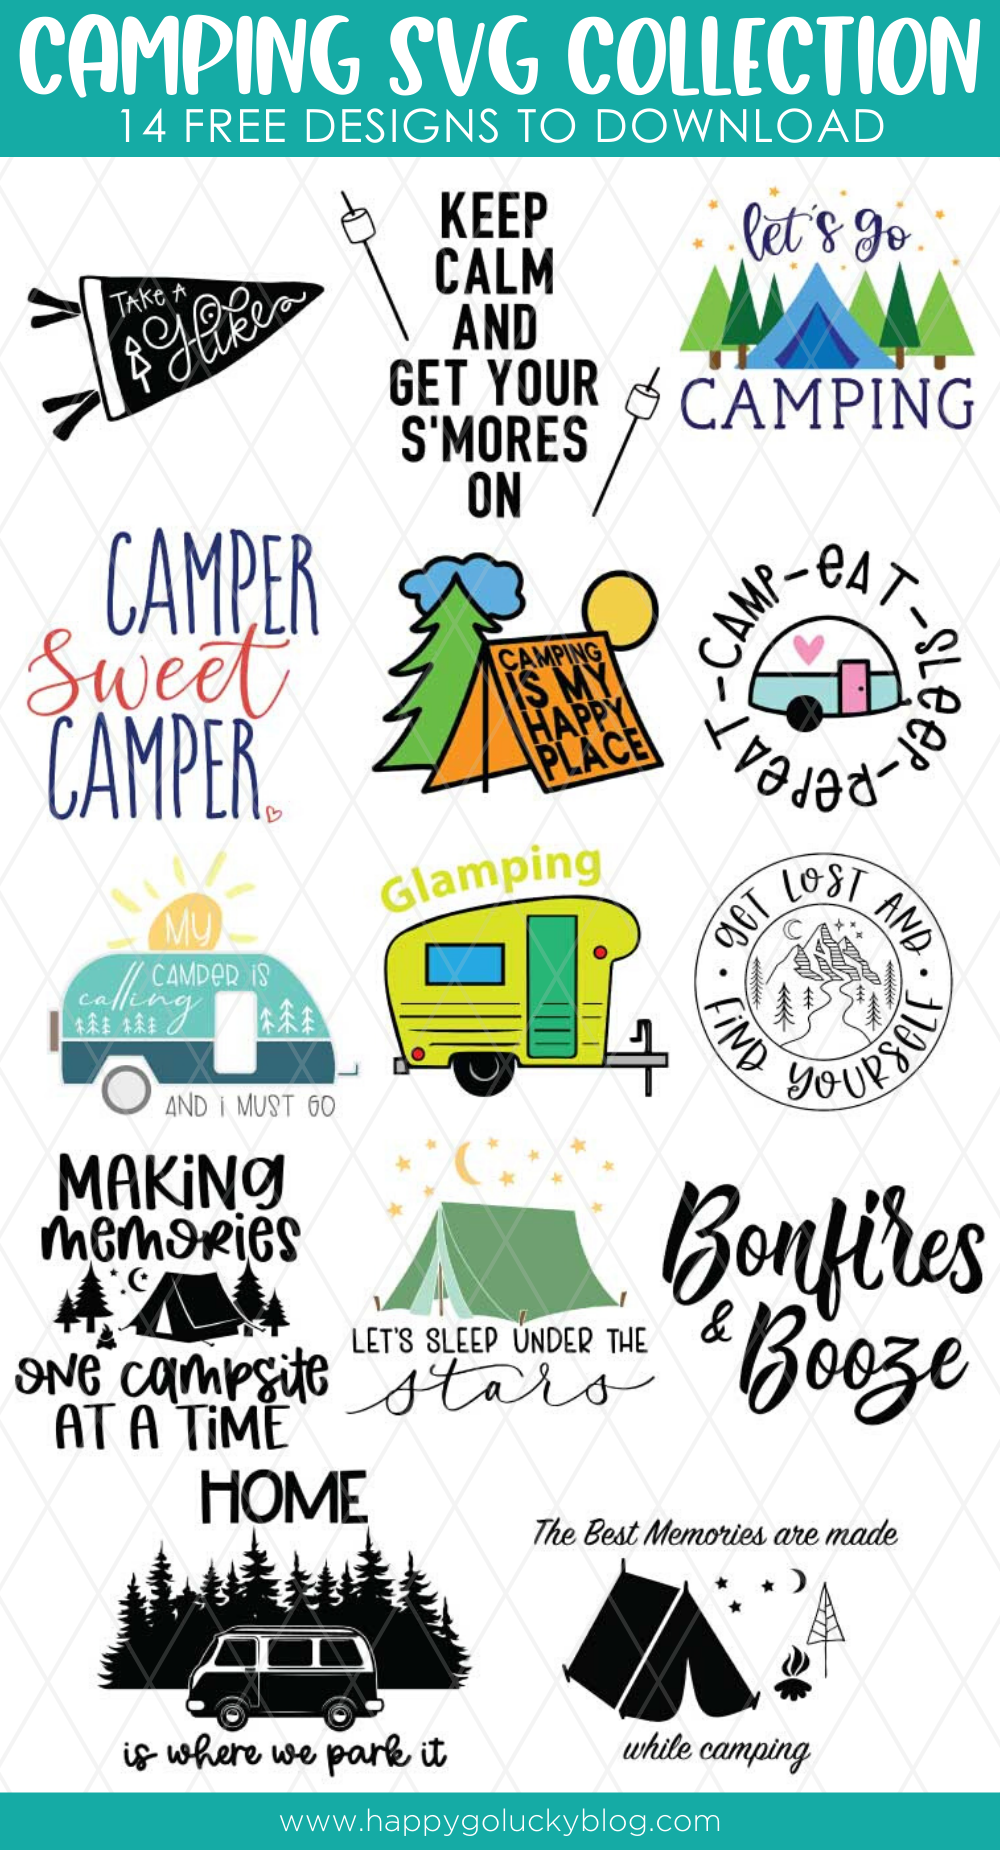 Camping SVG Collection